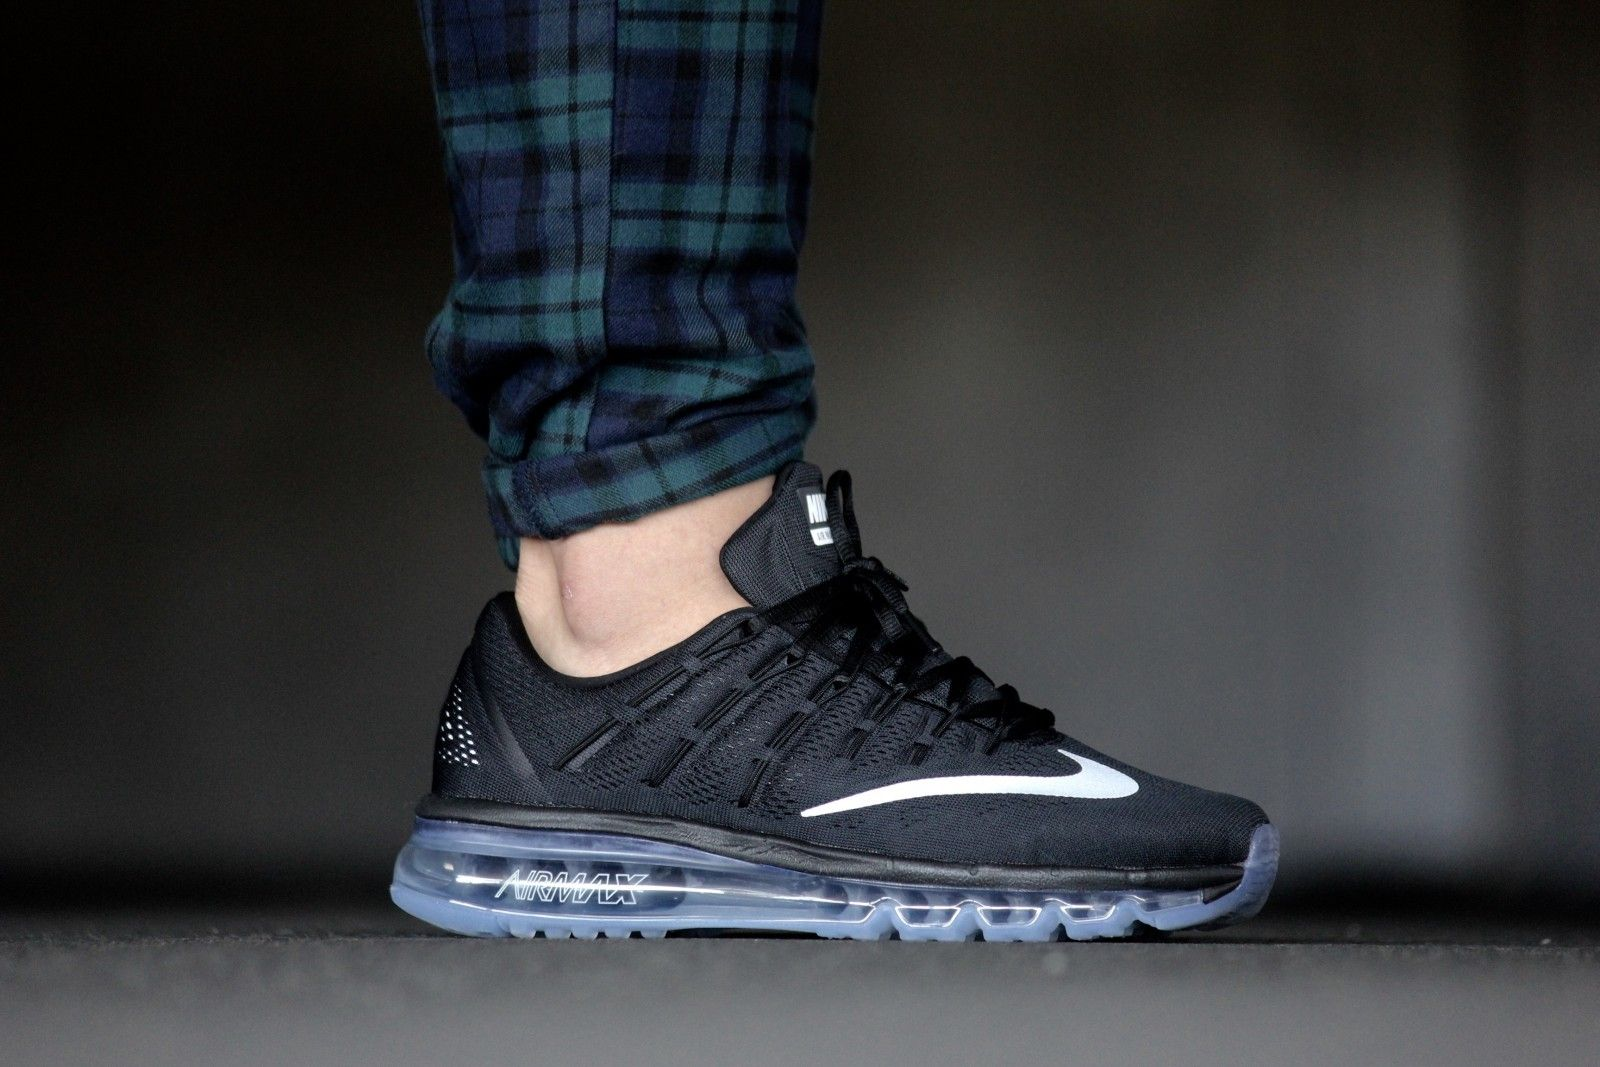 bbc54e62457 Nike Air Max 2016 Black  White-Dark Grey - 806771-001